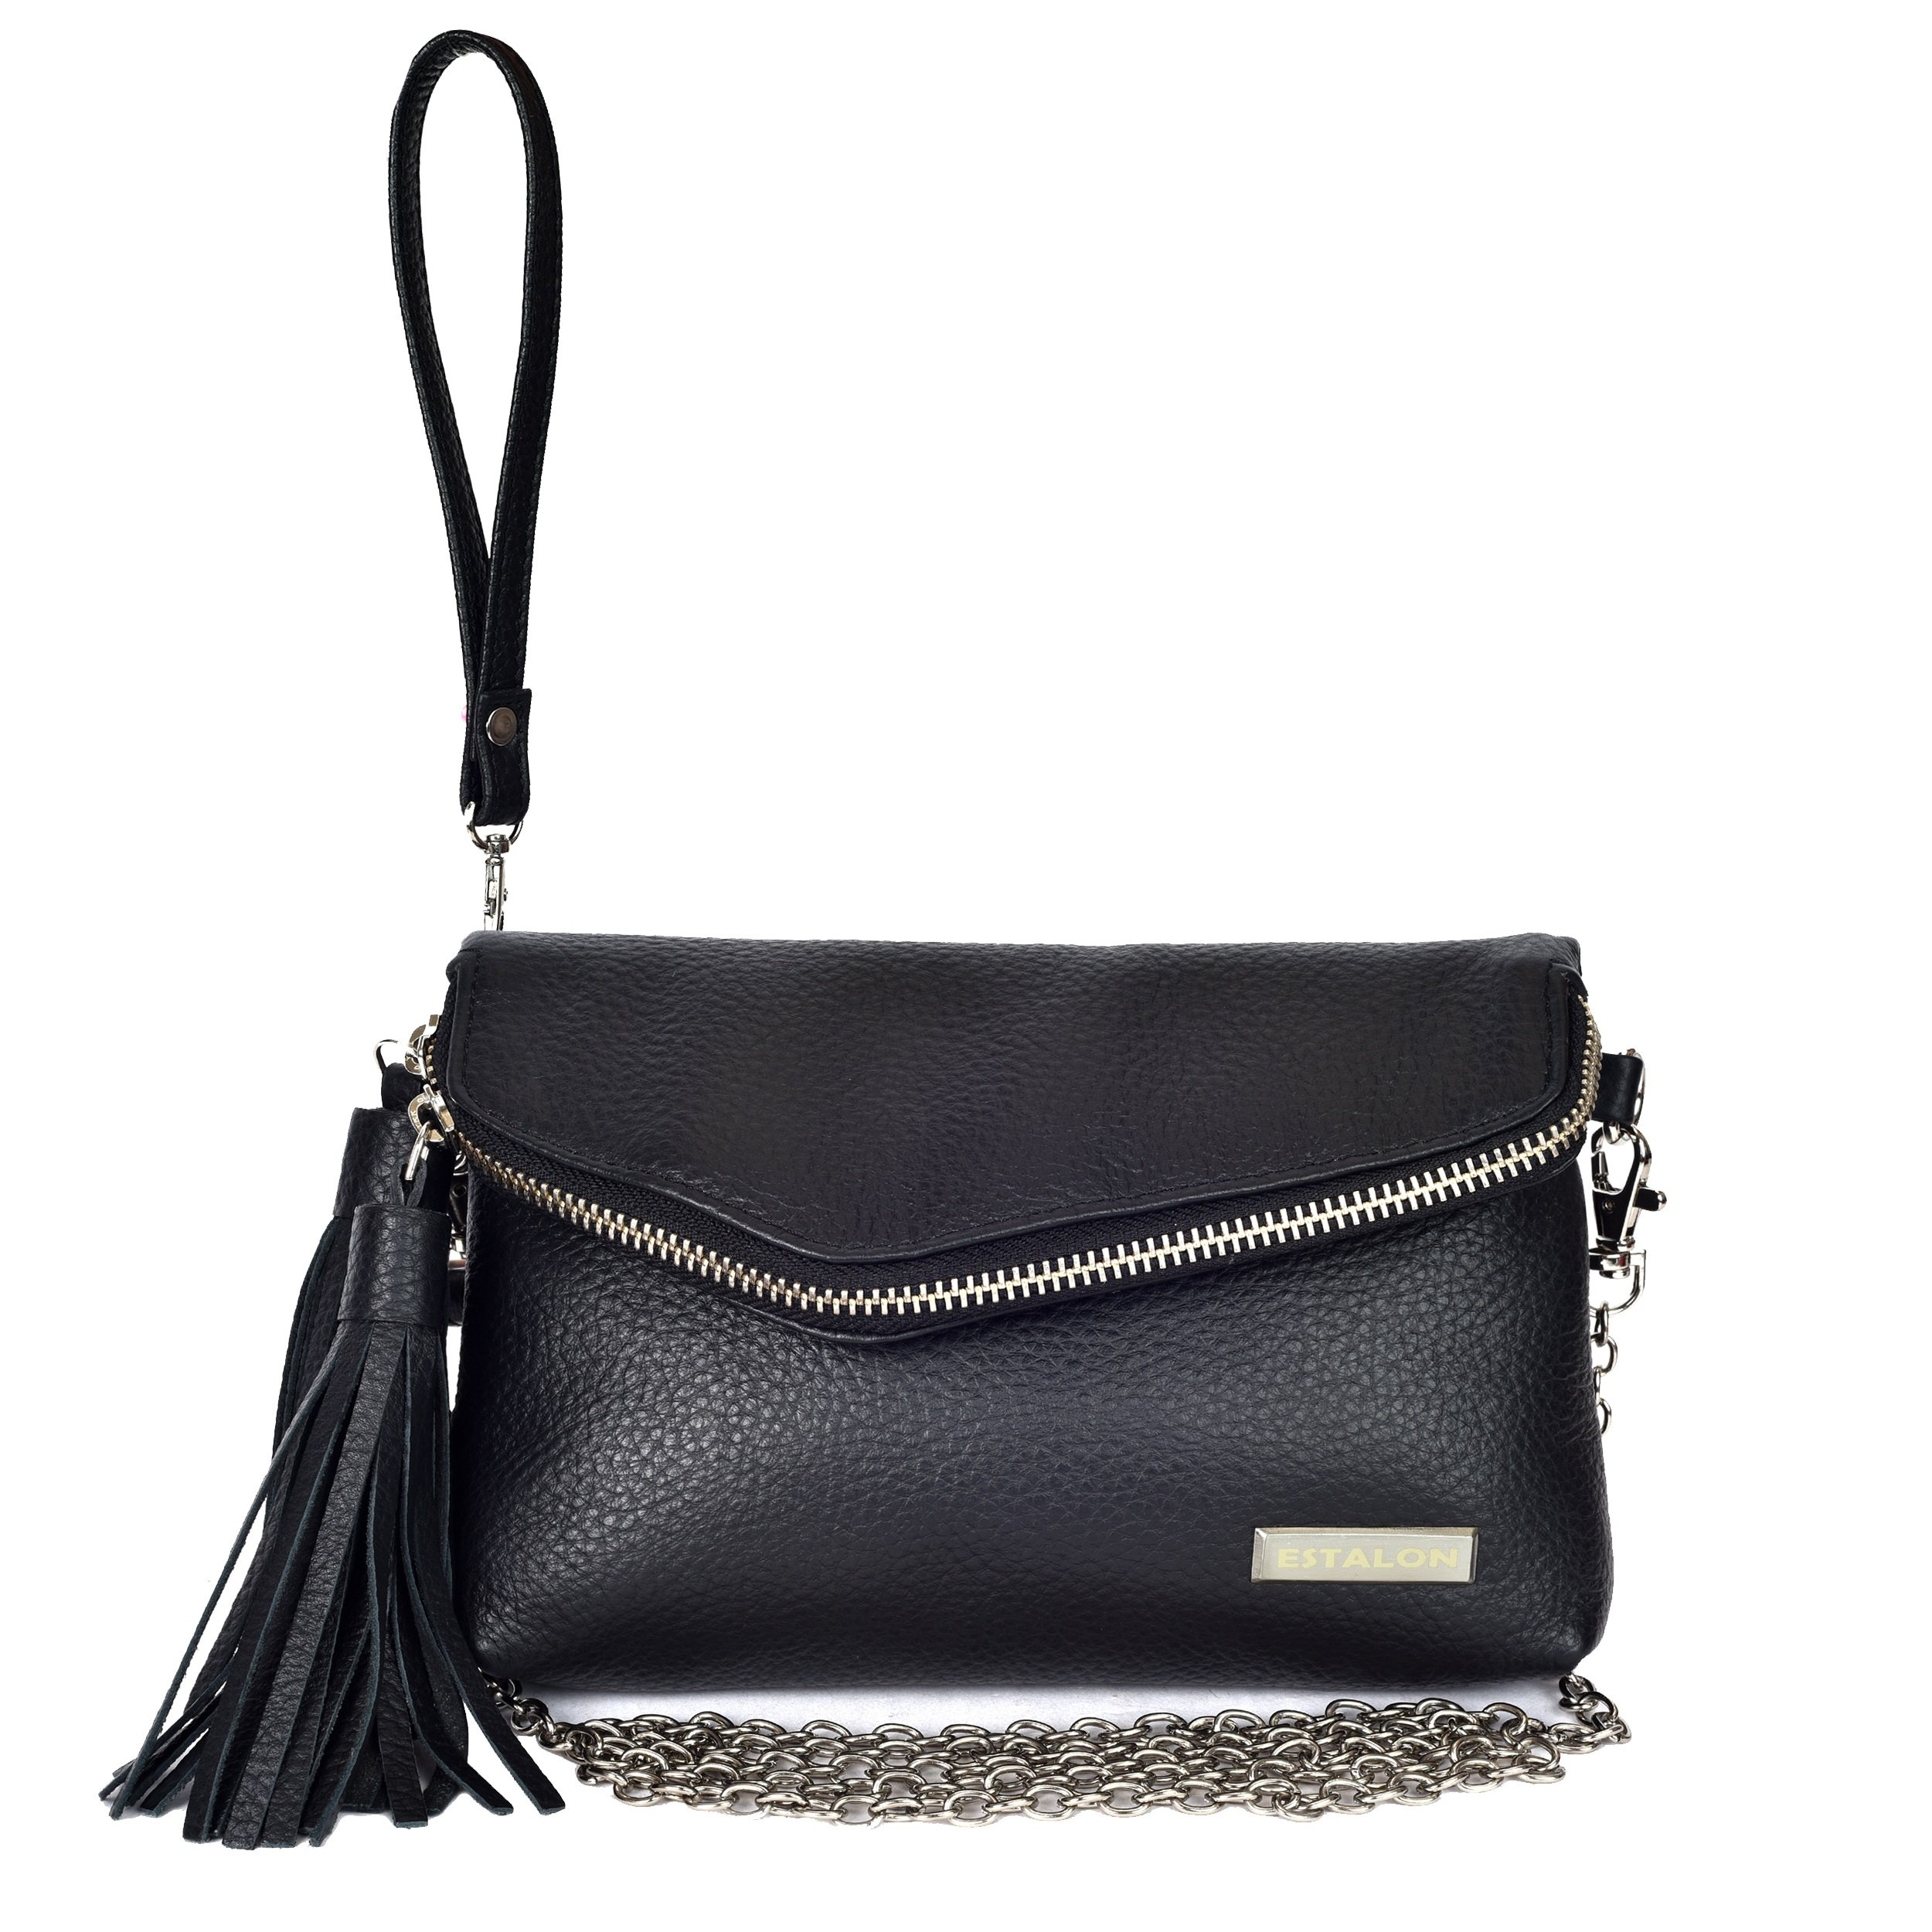 Leather Crossbody Purses and Bags for Women - Womens Crossover Handbags Over the Shoulder Travel Genuine Handmade Purse (Black Pebble)